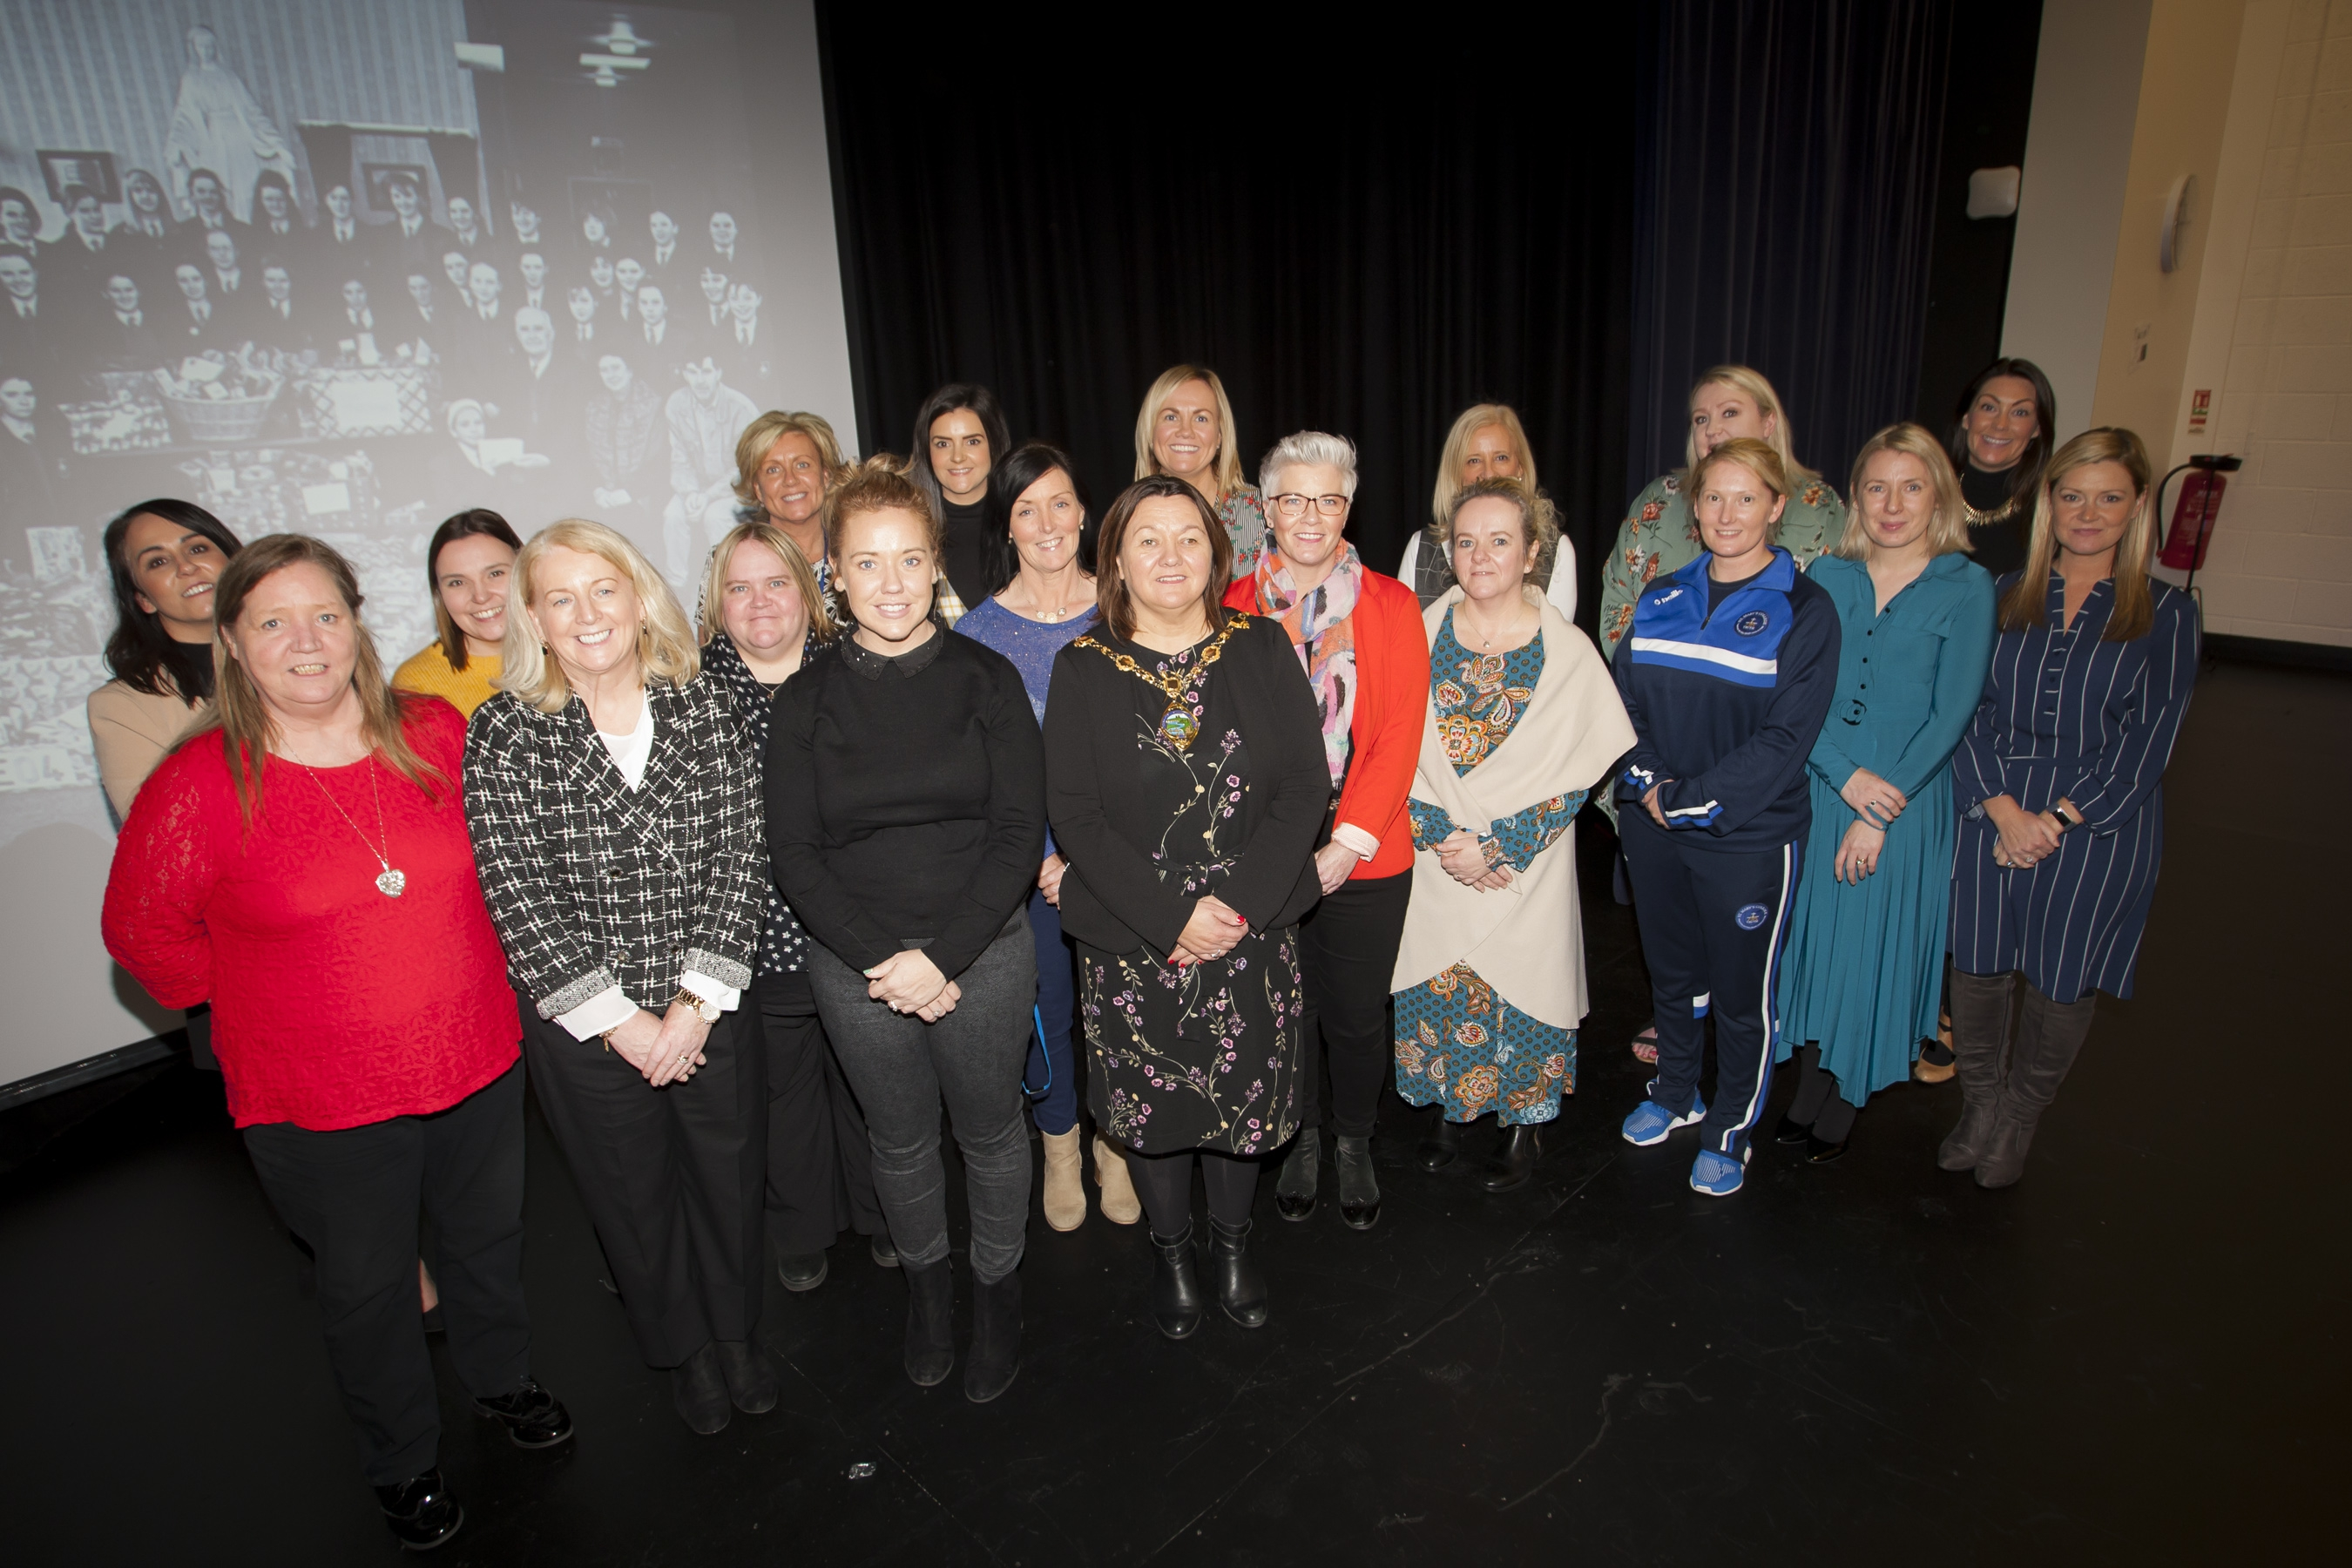 Mayor of Derry City and Strabane District Council, Michaela Boyle pictured at St. Mary's College's 60th Anniverary Exhibition on Friday with staff members who were former pupils at the school. (Photos: Jim McCafferty Photography)